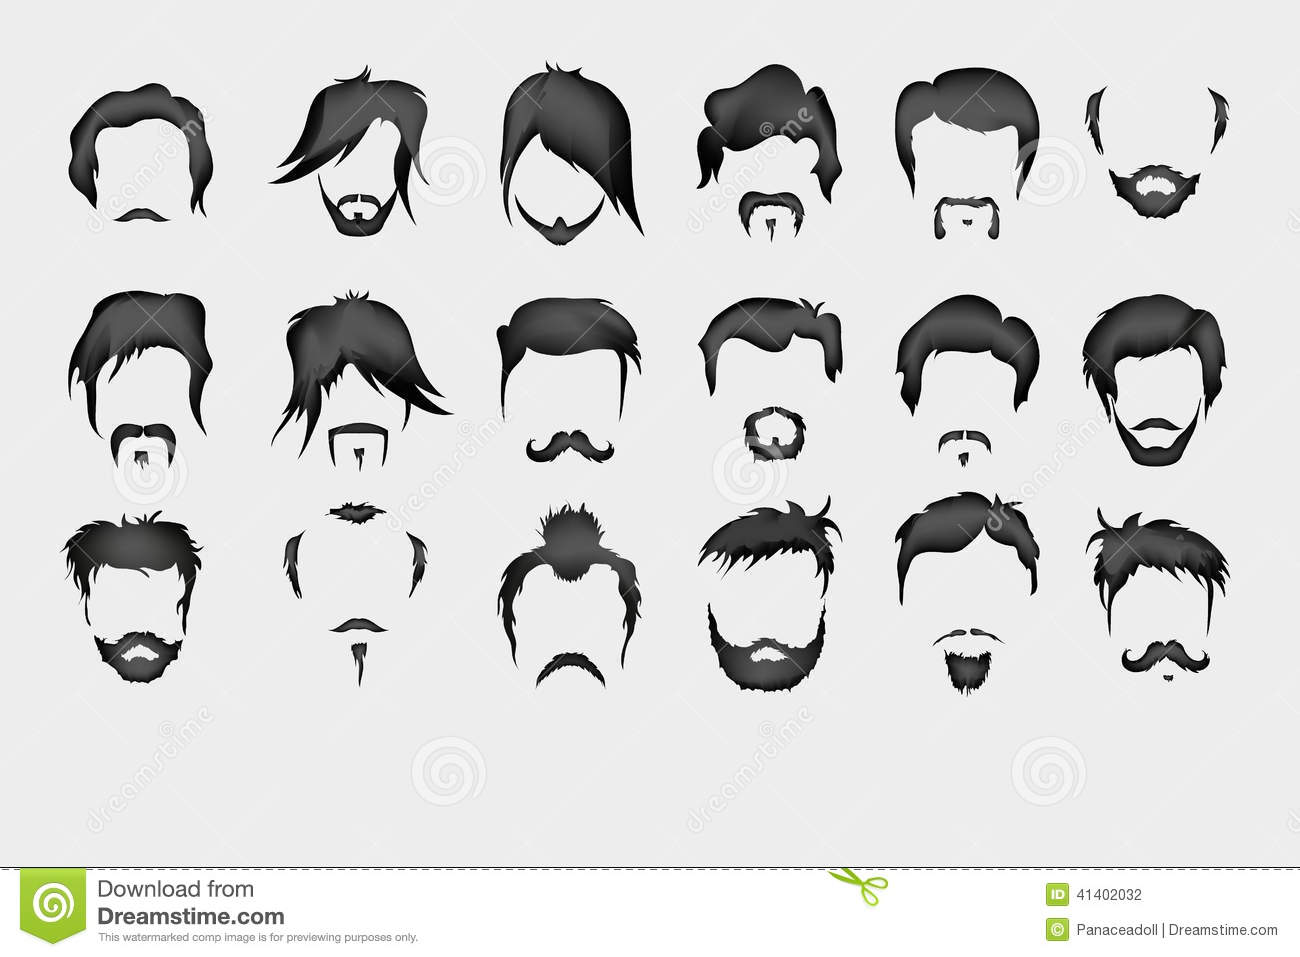 Hairstyle Vector: Ensemble De Vecteur Cheveux, Moustache, Barbe Illustration